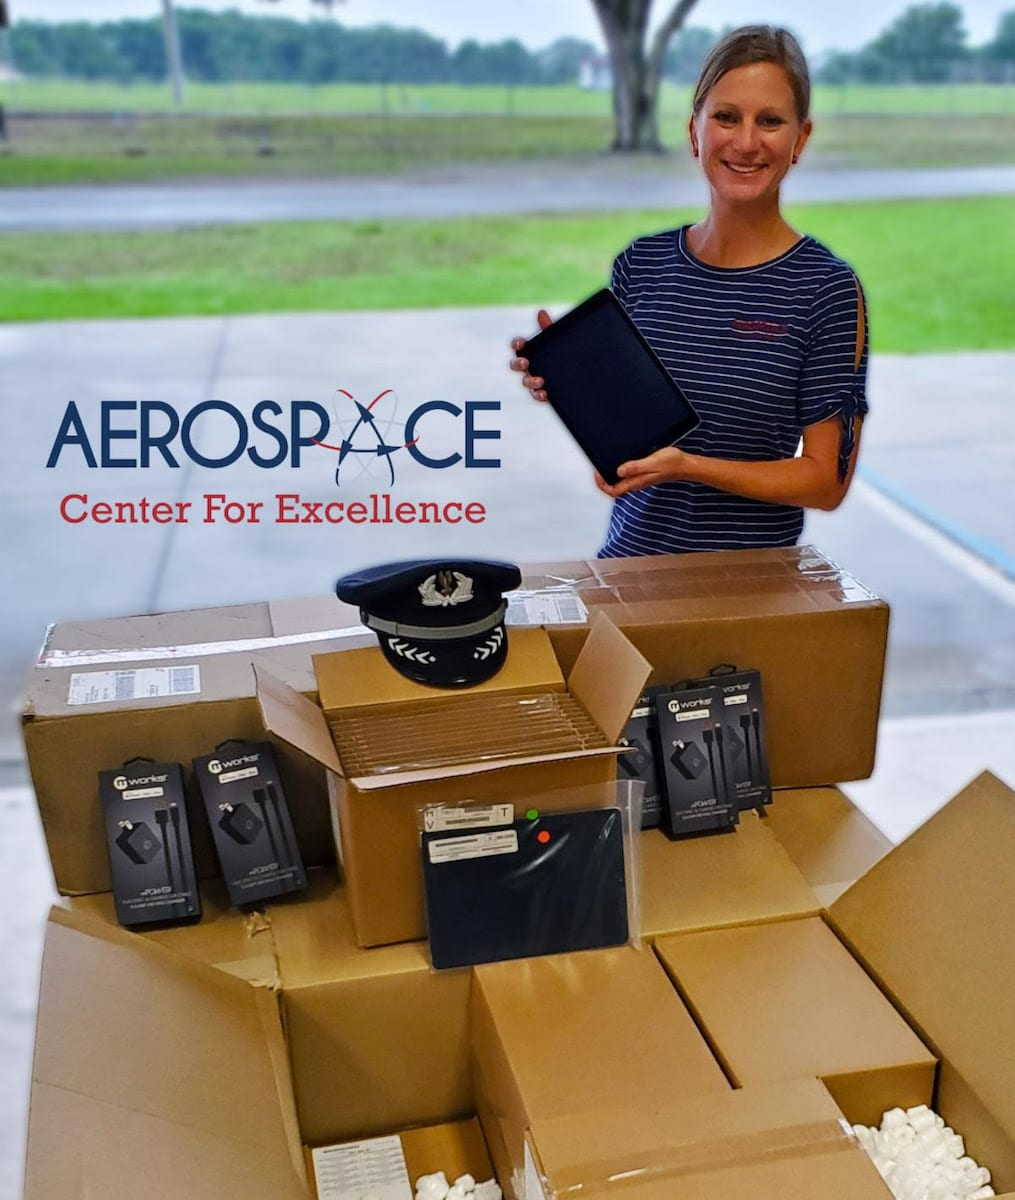 Airline donates iPads to students